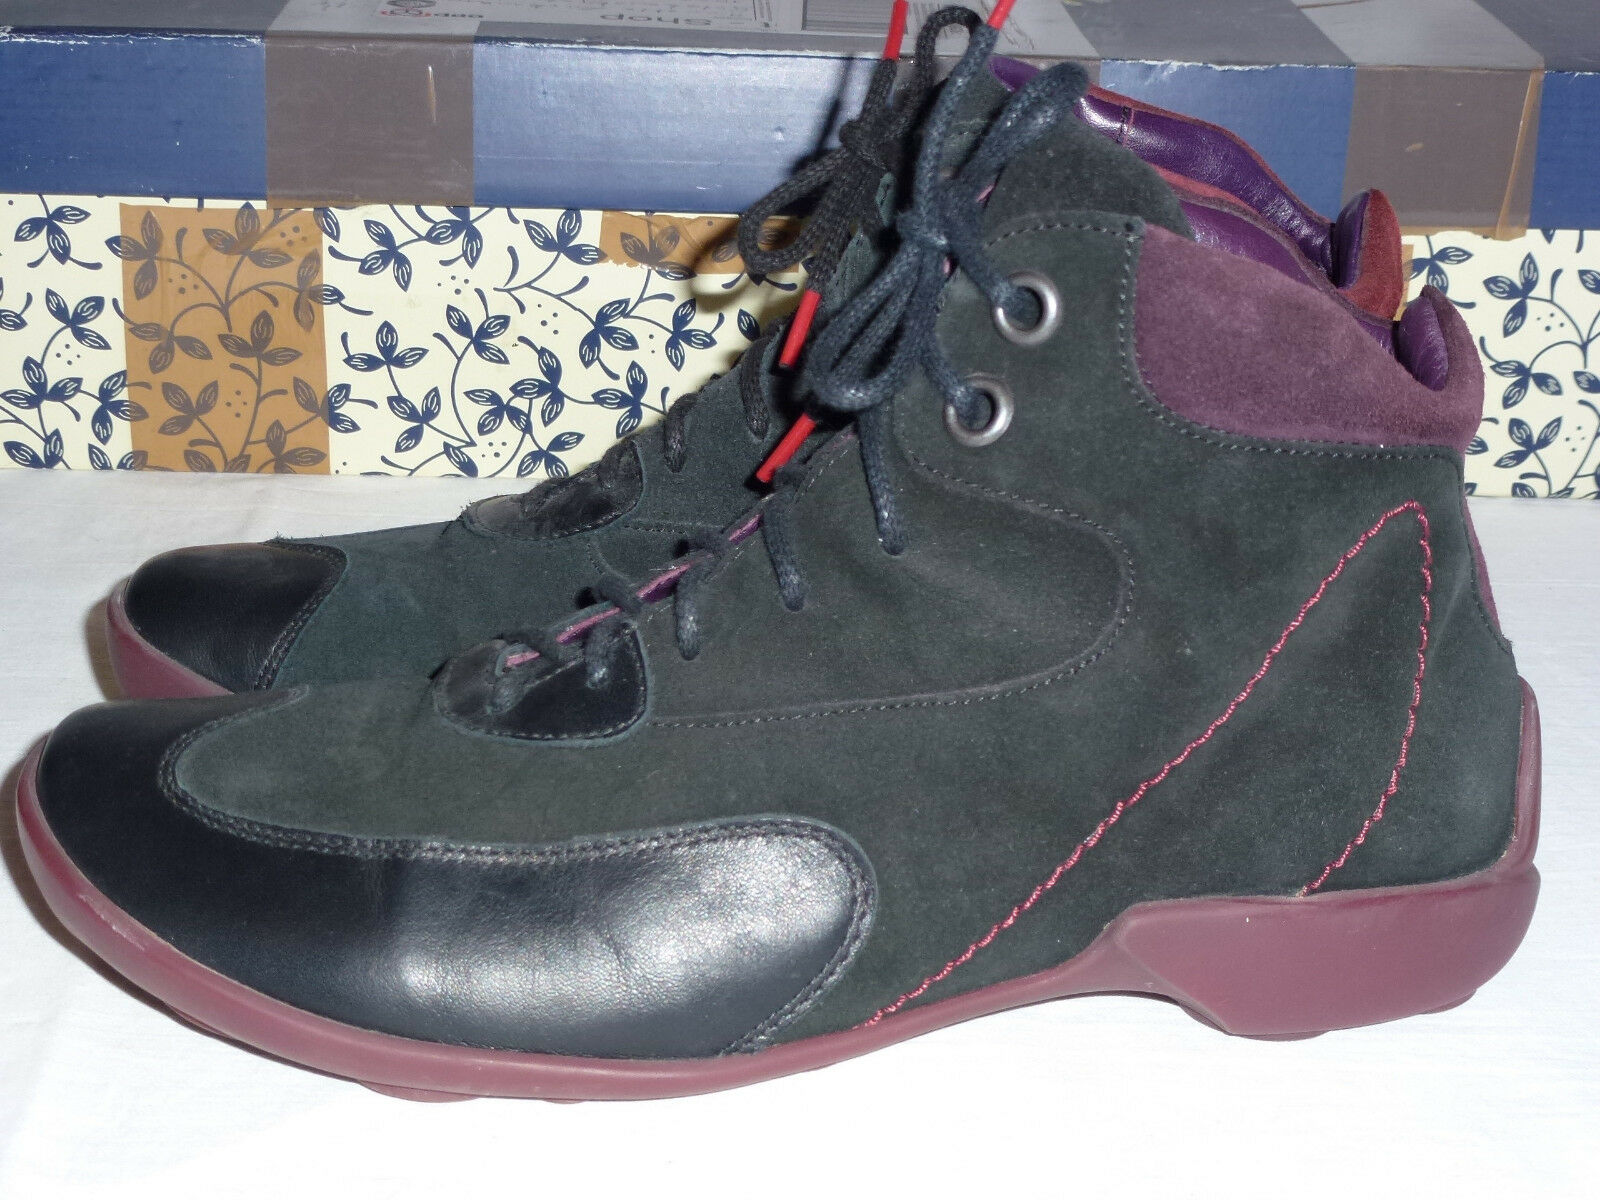 Think cookie botines botas de cookie Think talla 37-negro-forradas-bloggers - 9,7/10 8492c9